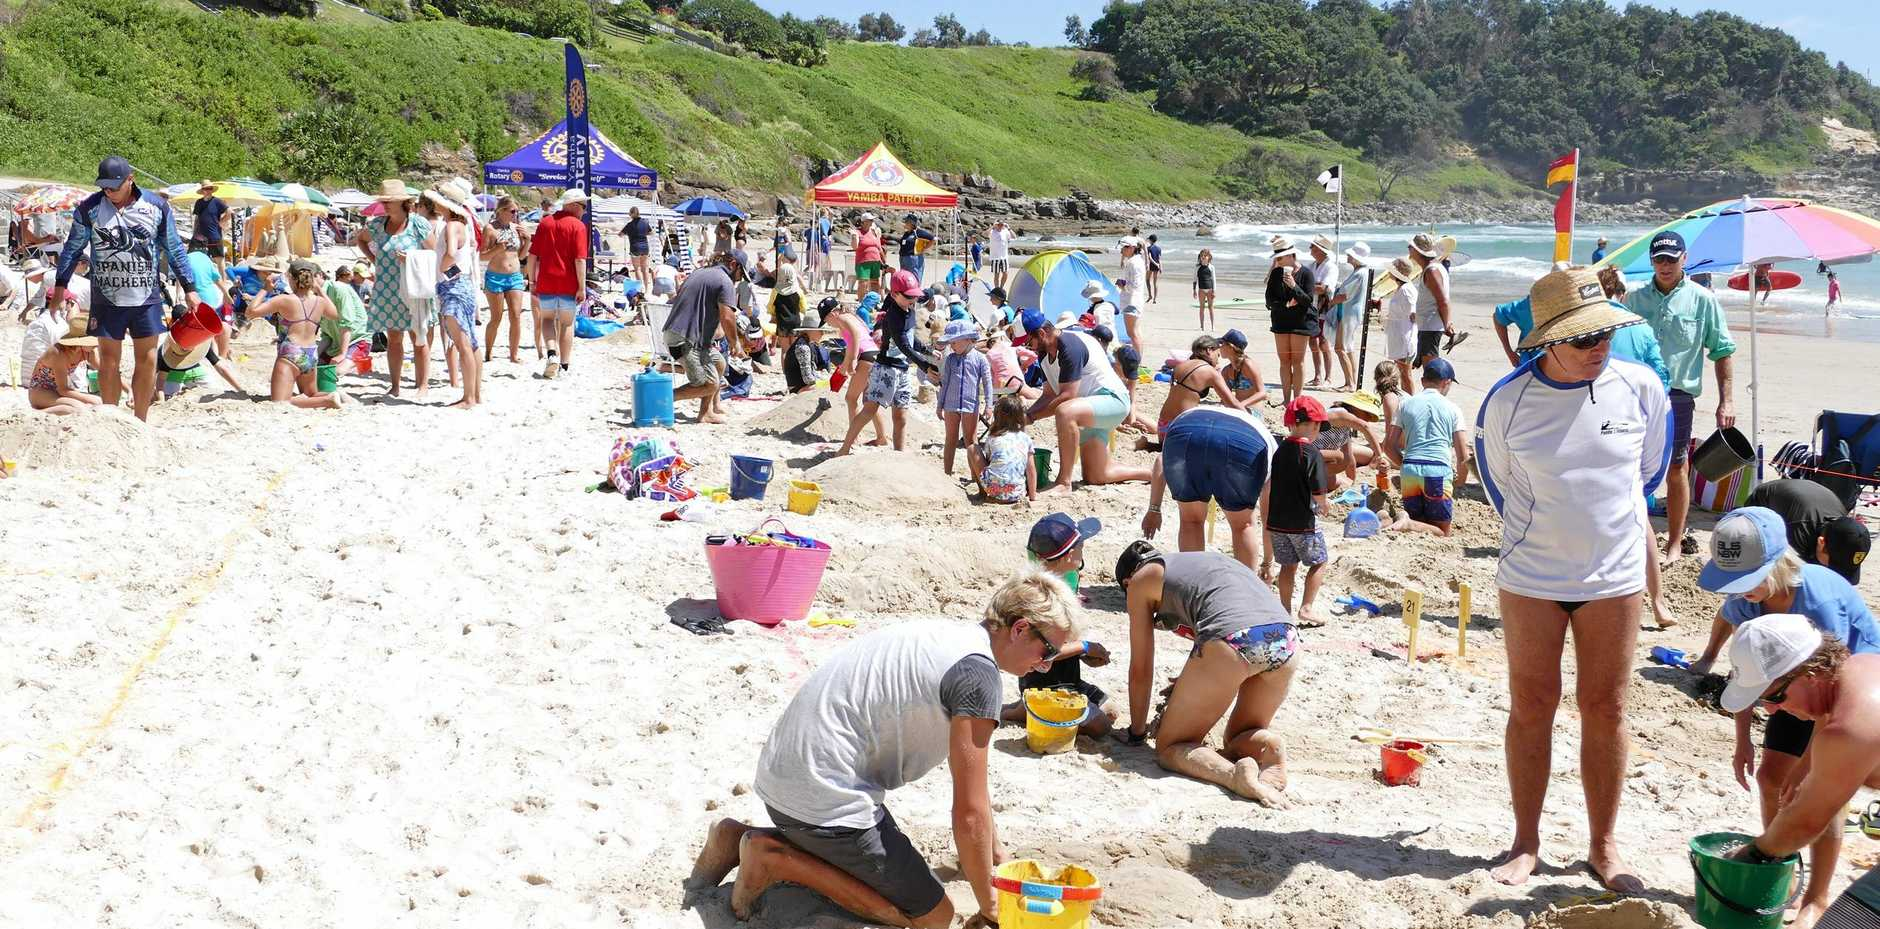 About 35 teams entered Sunday's Yamba Lions Club family fun day sandcastle competition at Main Beach Yamba.